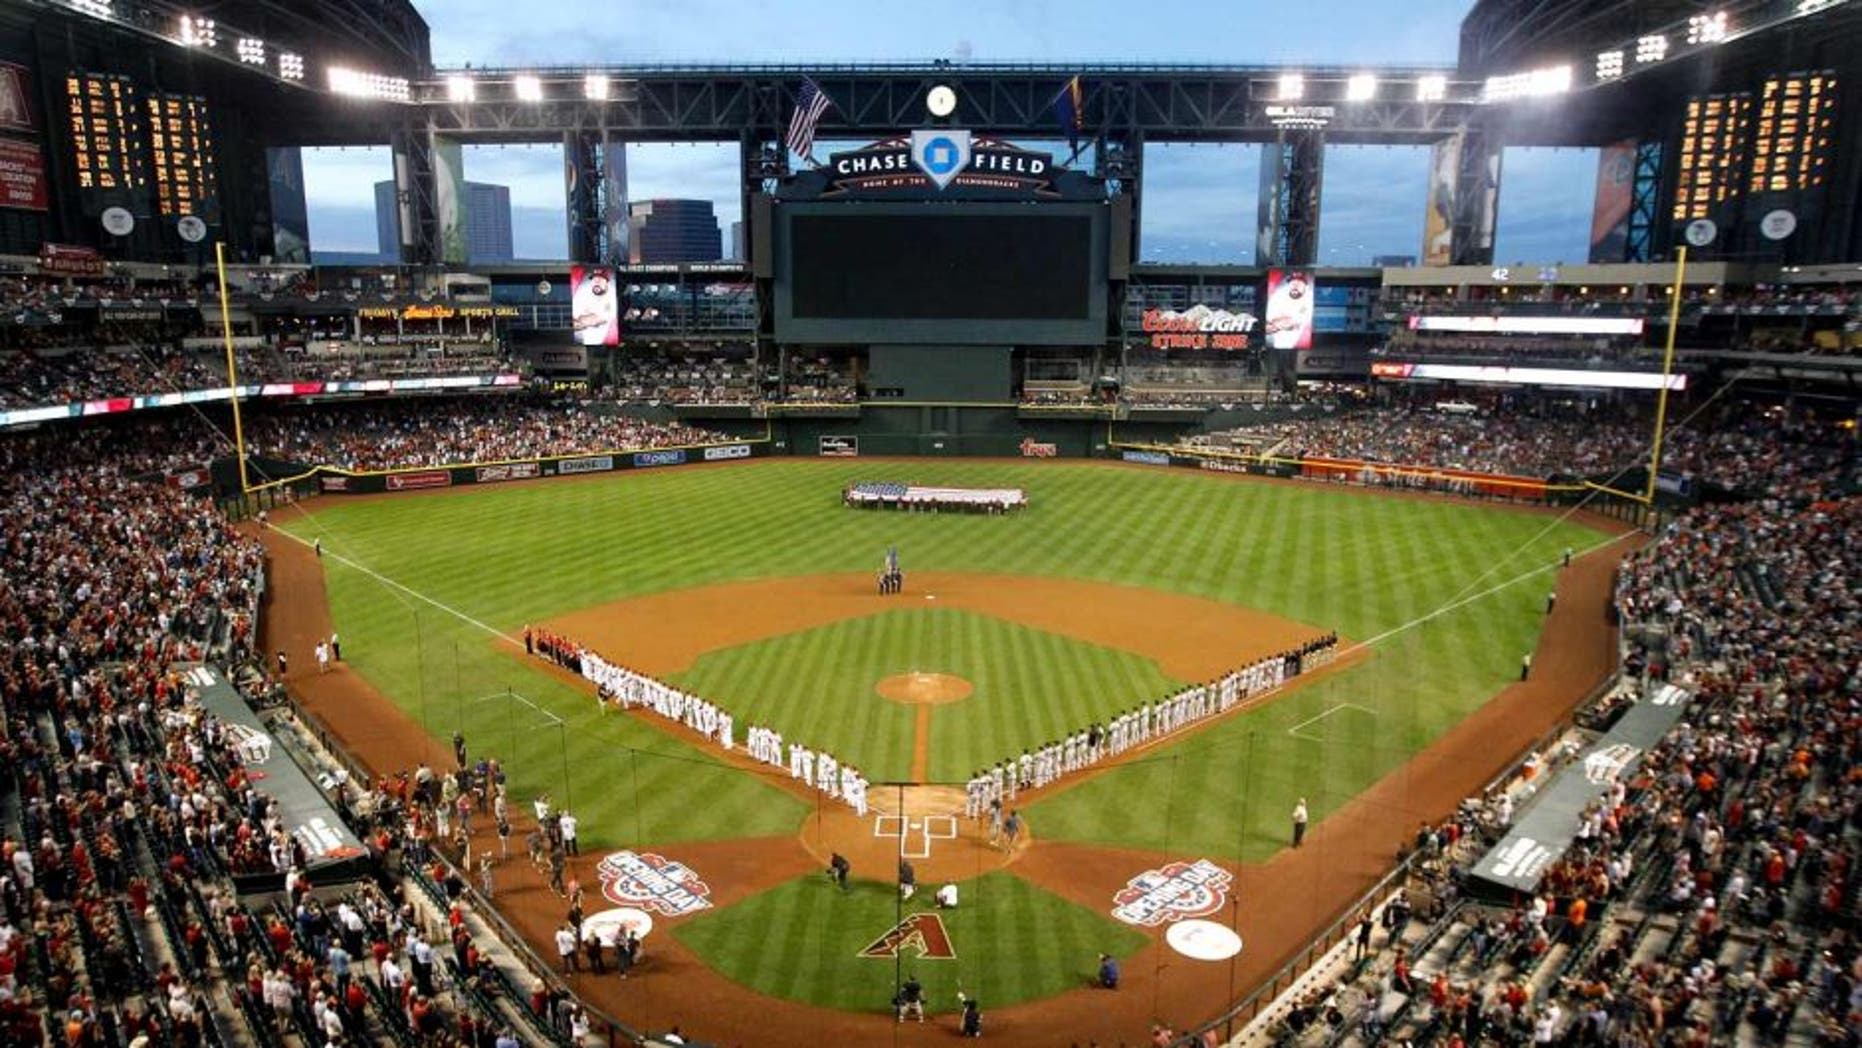 PHOENIX, AZ - APRIL 06: General view as the San Francisco Giants and the Arizona Diamondbacks stand attended for the national anthem before the Opening Day MLB game at Chase Field on April 6, 2015 in Phoenix, Arizona. (Photo by Christian Petersen/Getty Images)